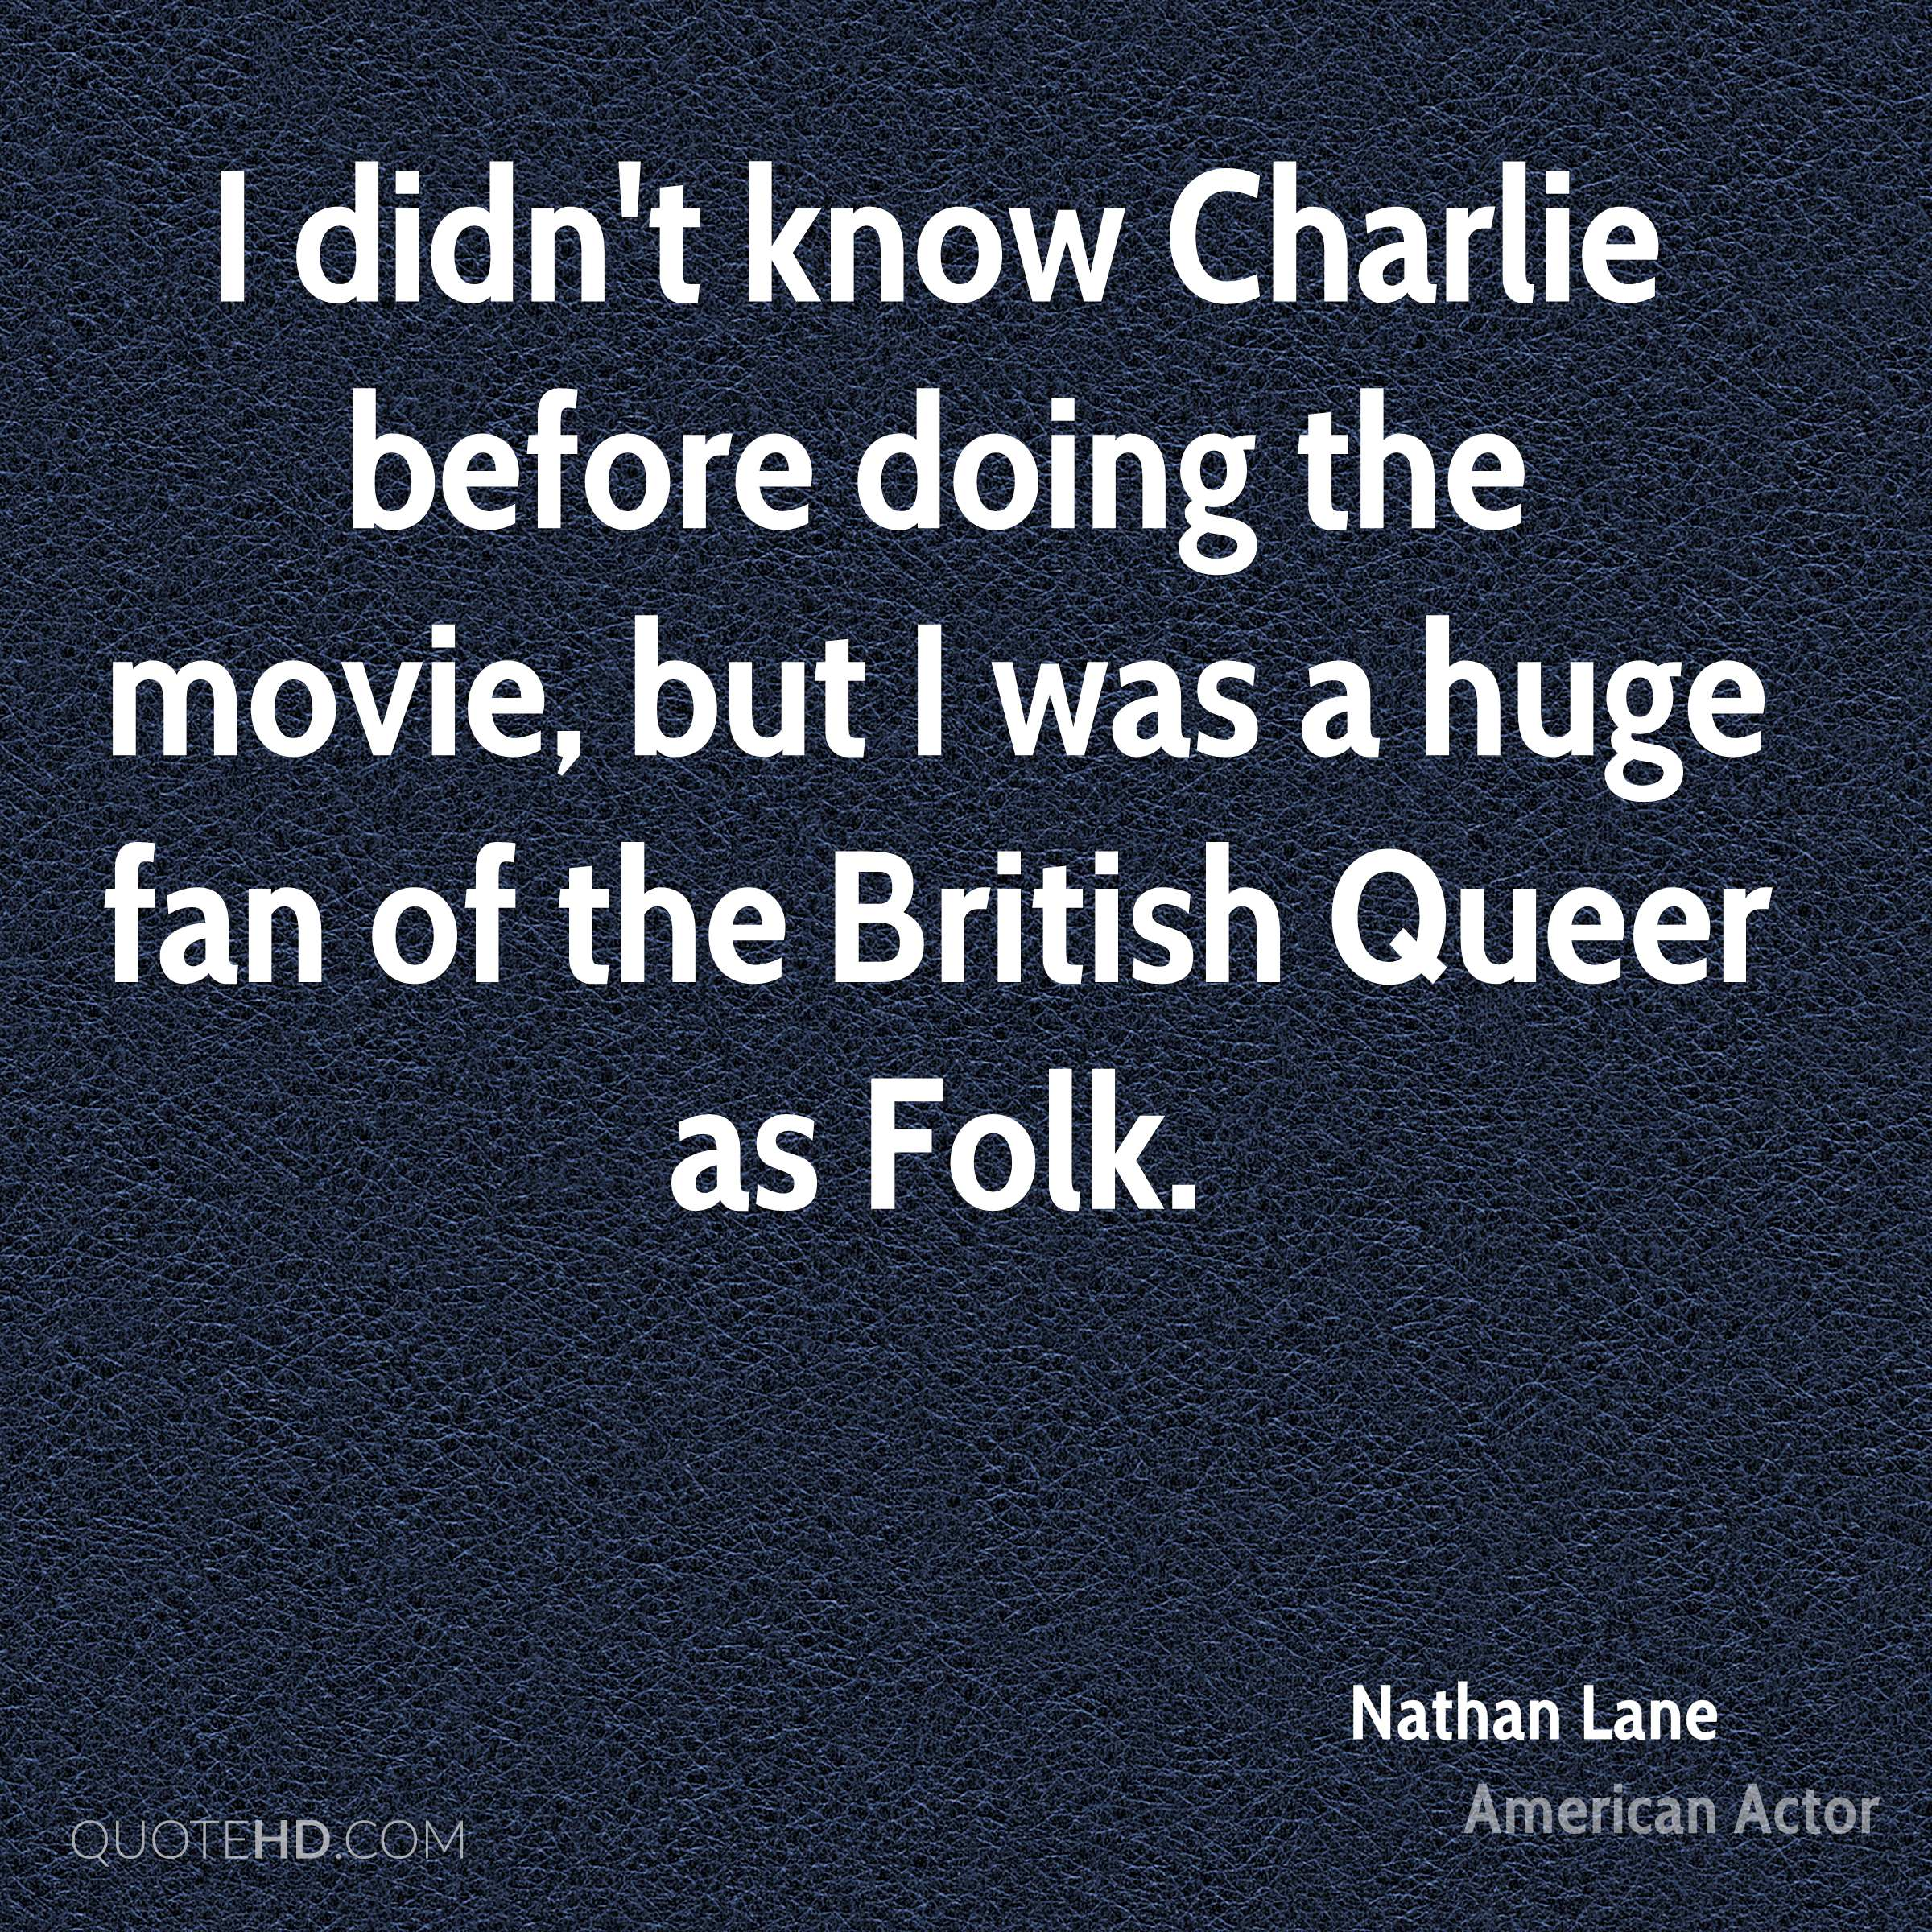 I didn't know Charlie before doing the movie, but I was a huge fan of the British Queer as Folk.